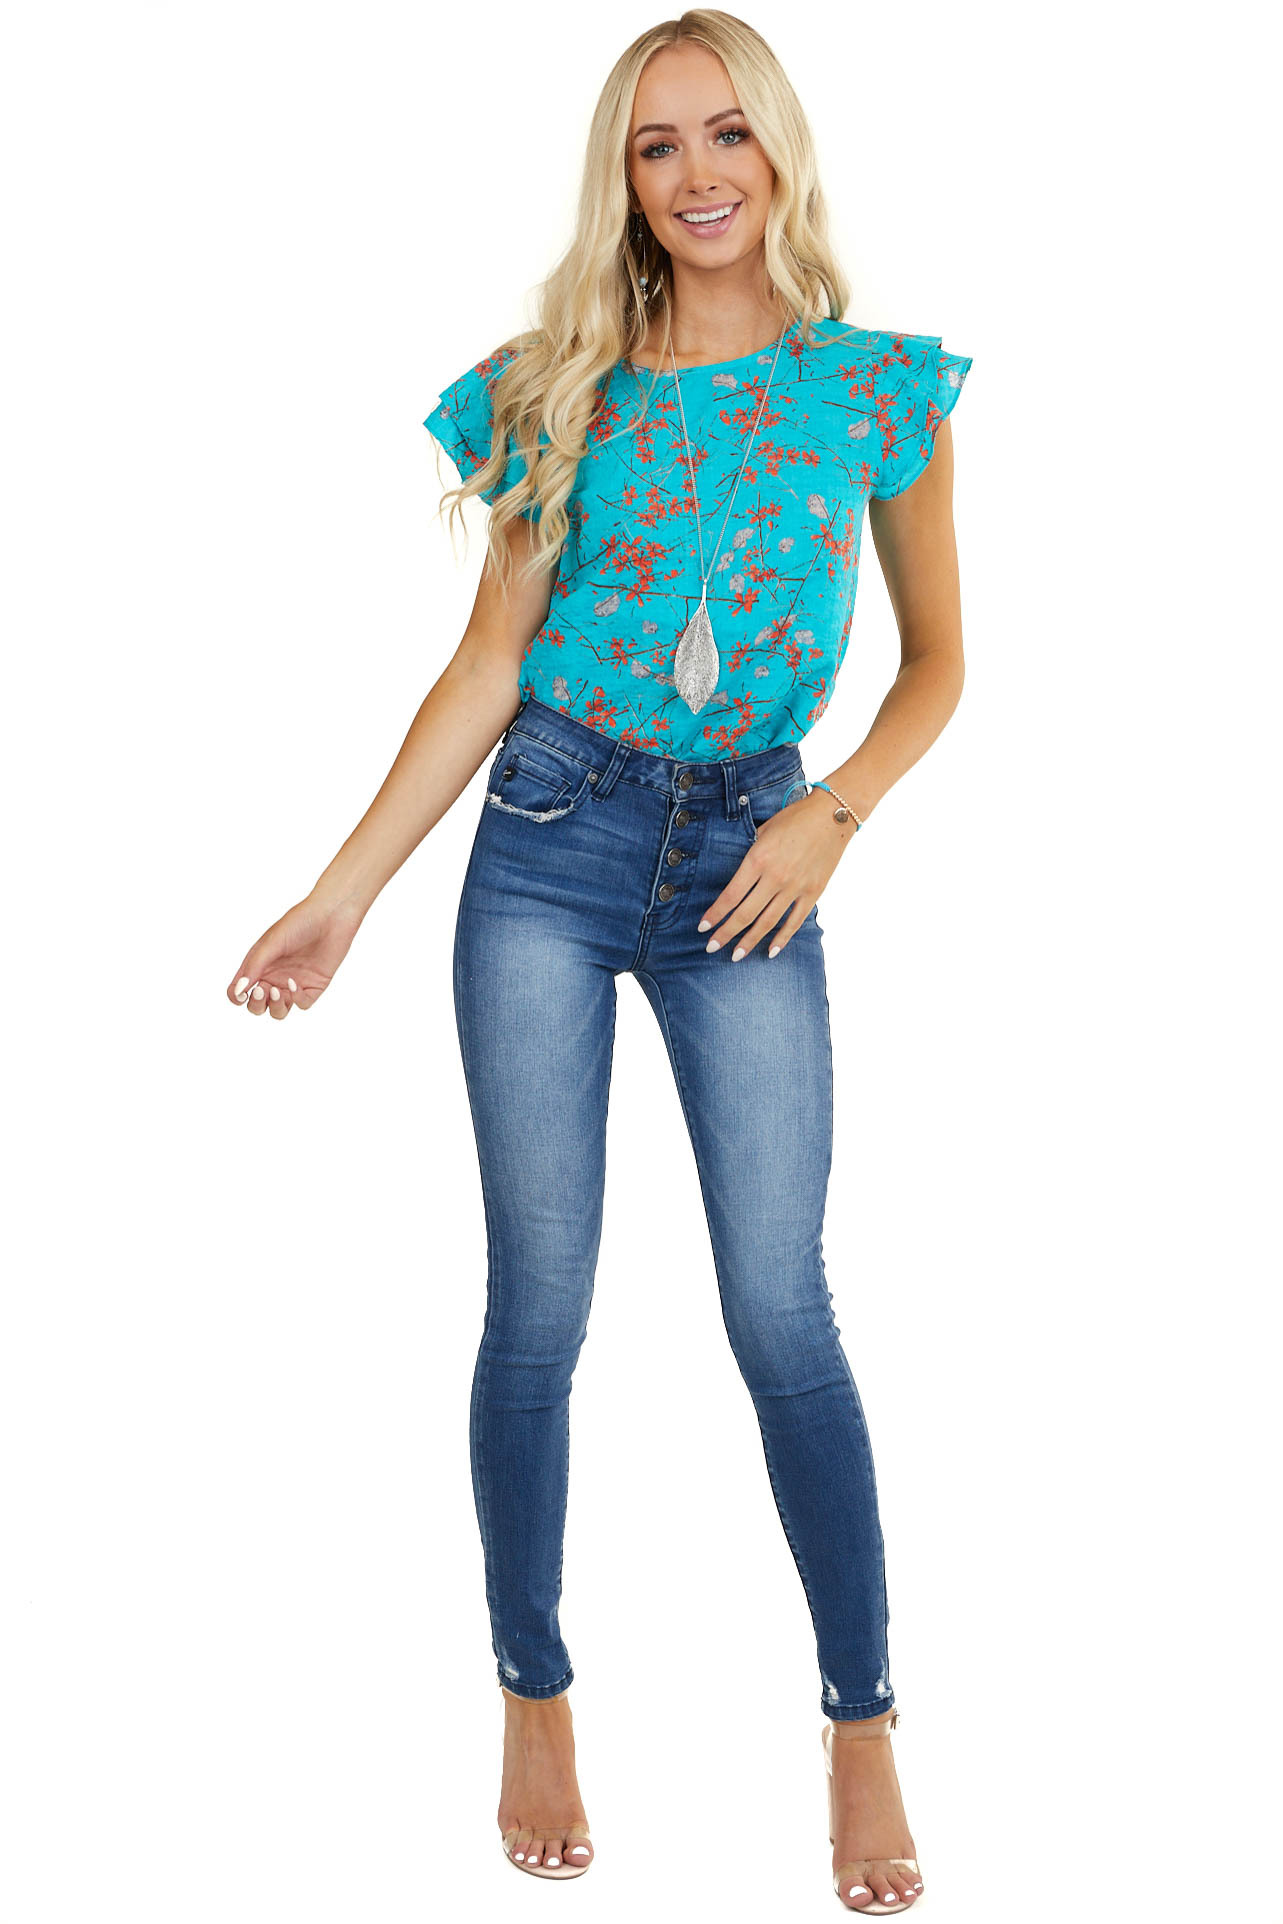 Teal and Tomato Red Floral Top with Ruffled Cap Sleeves